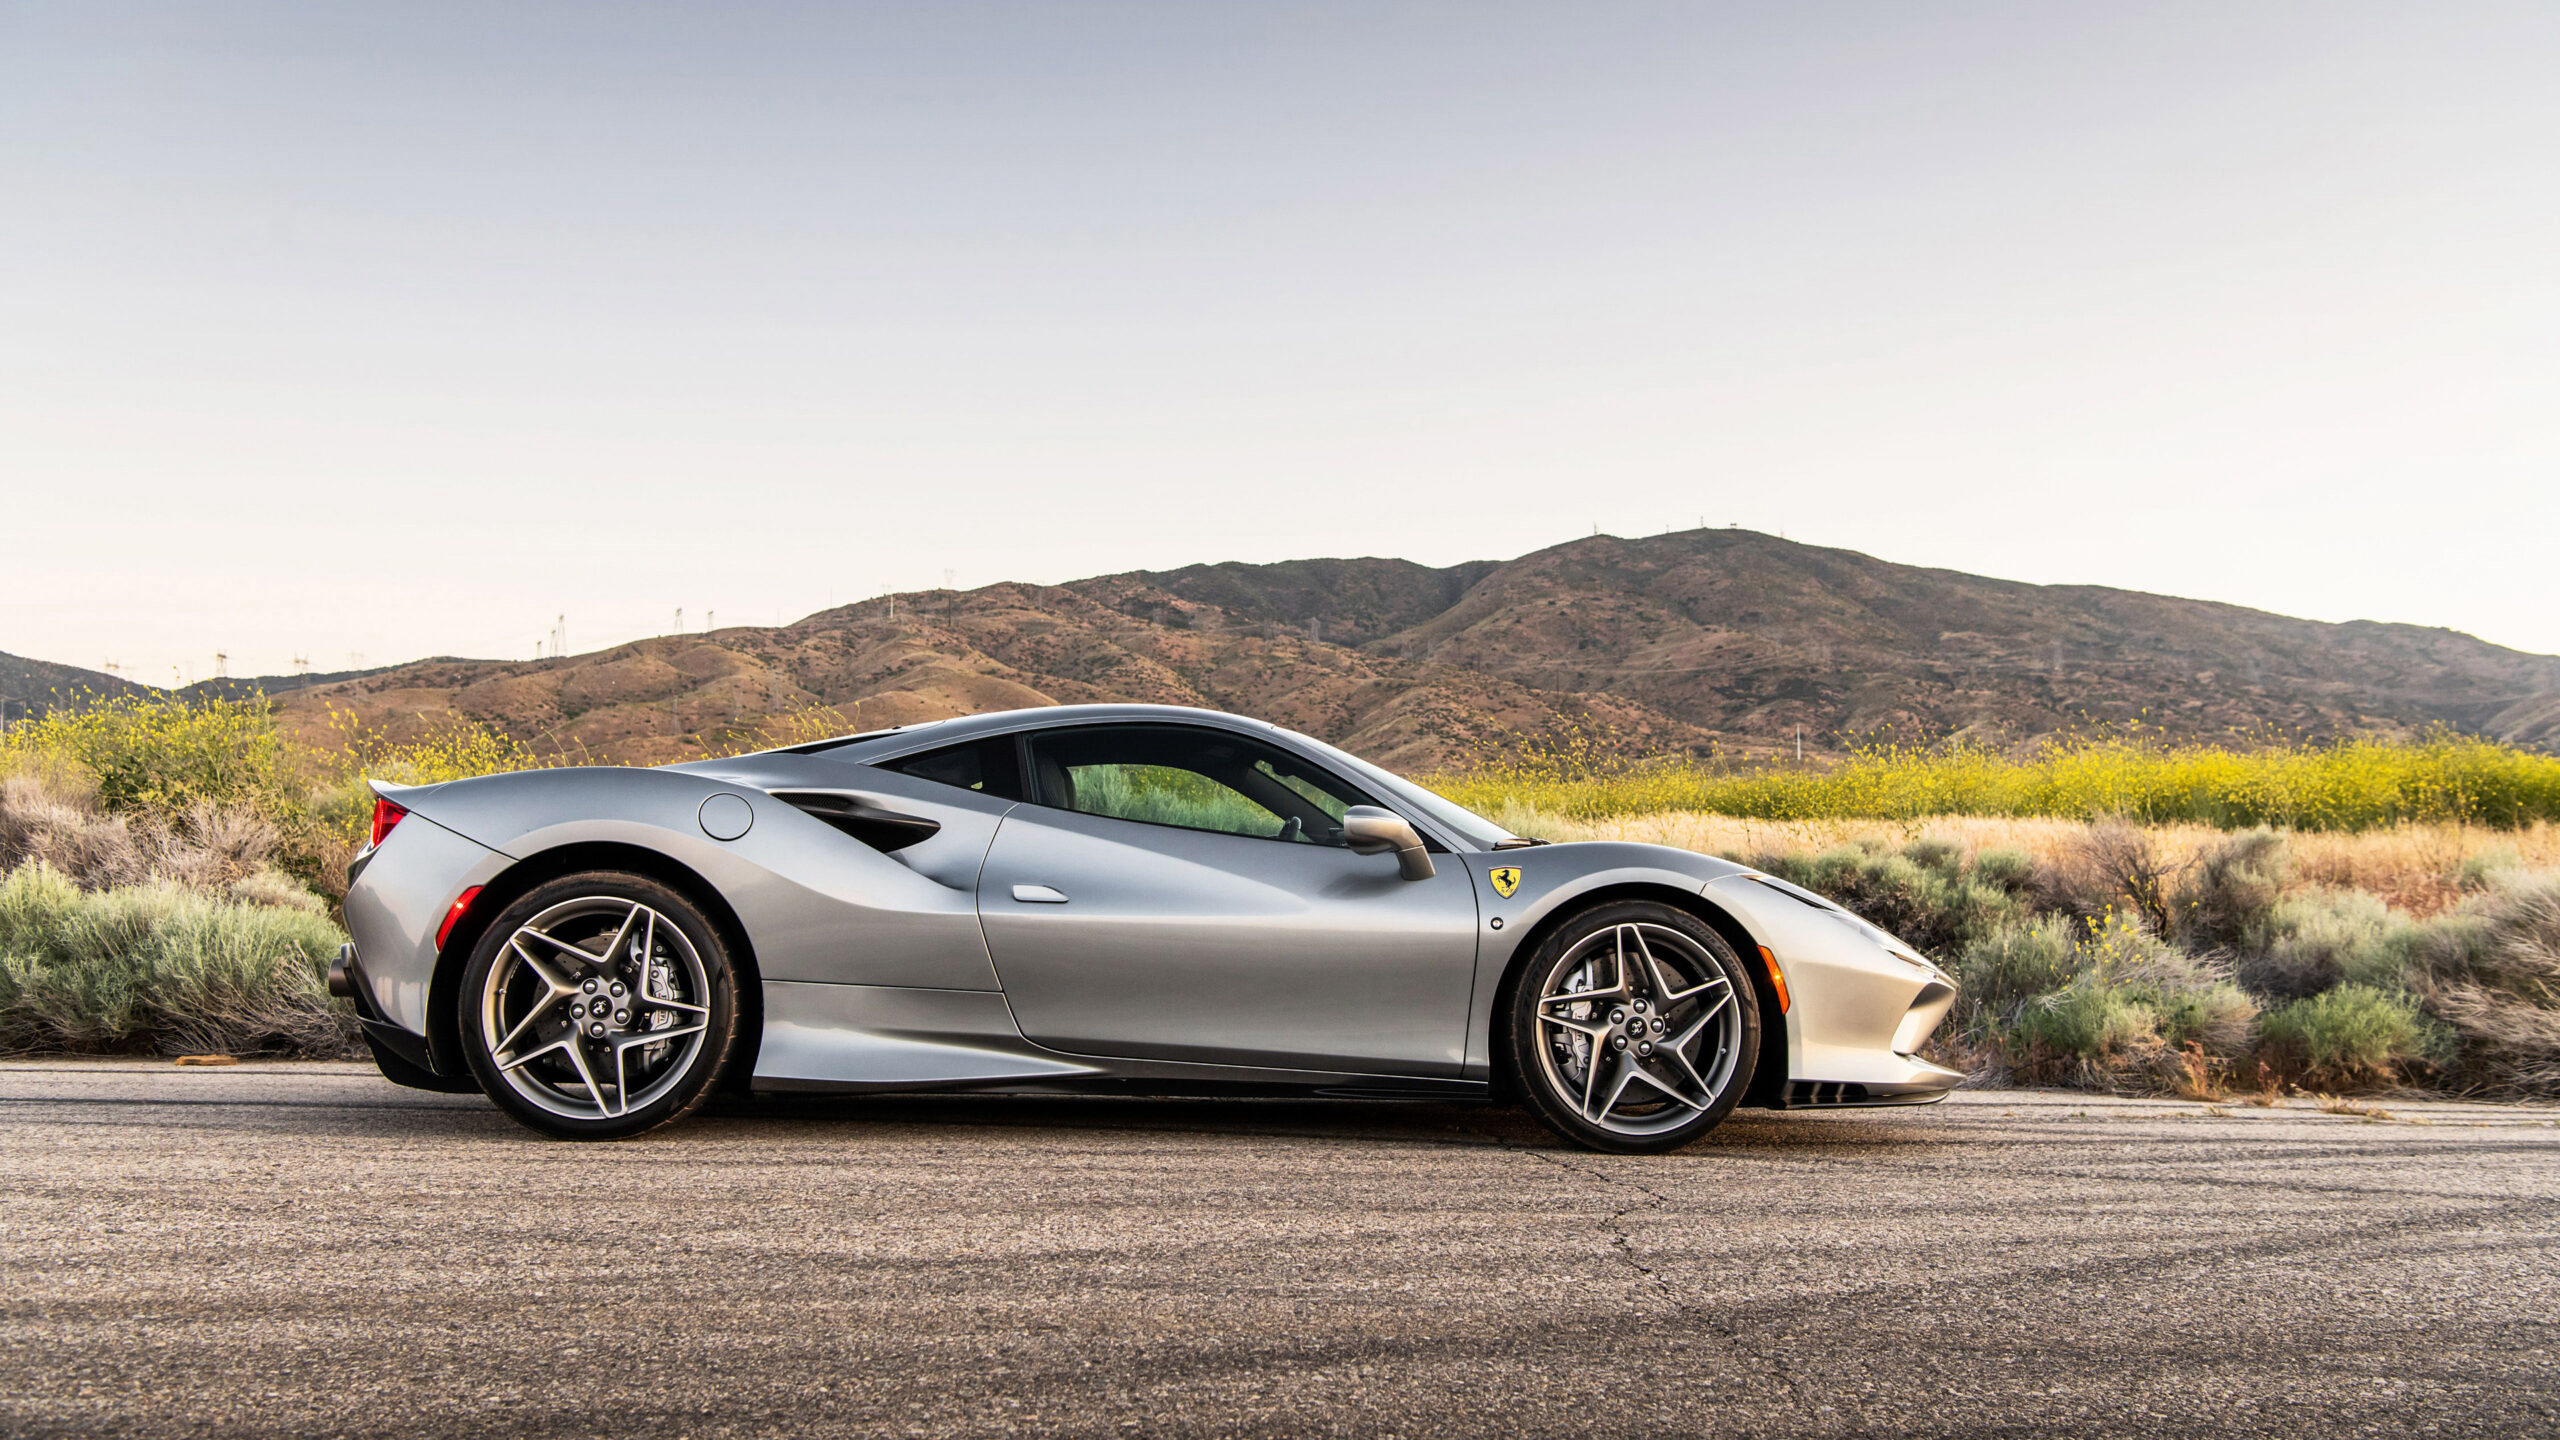 A side view of a silver Ferrari F8 Tributo, in the country.